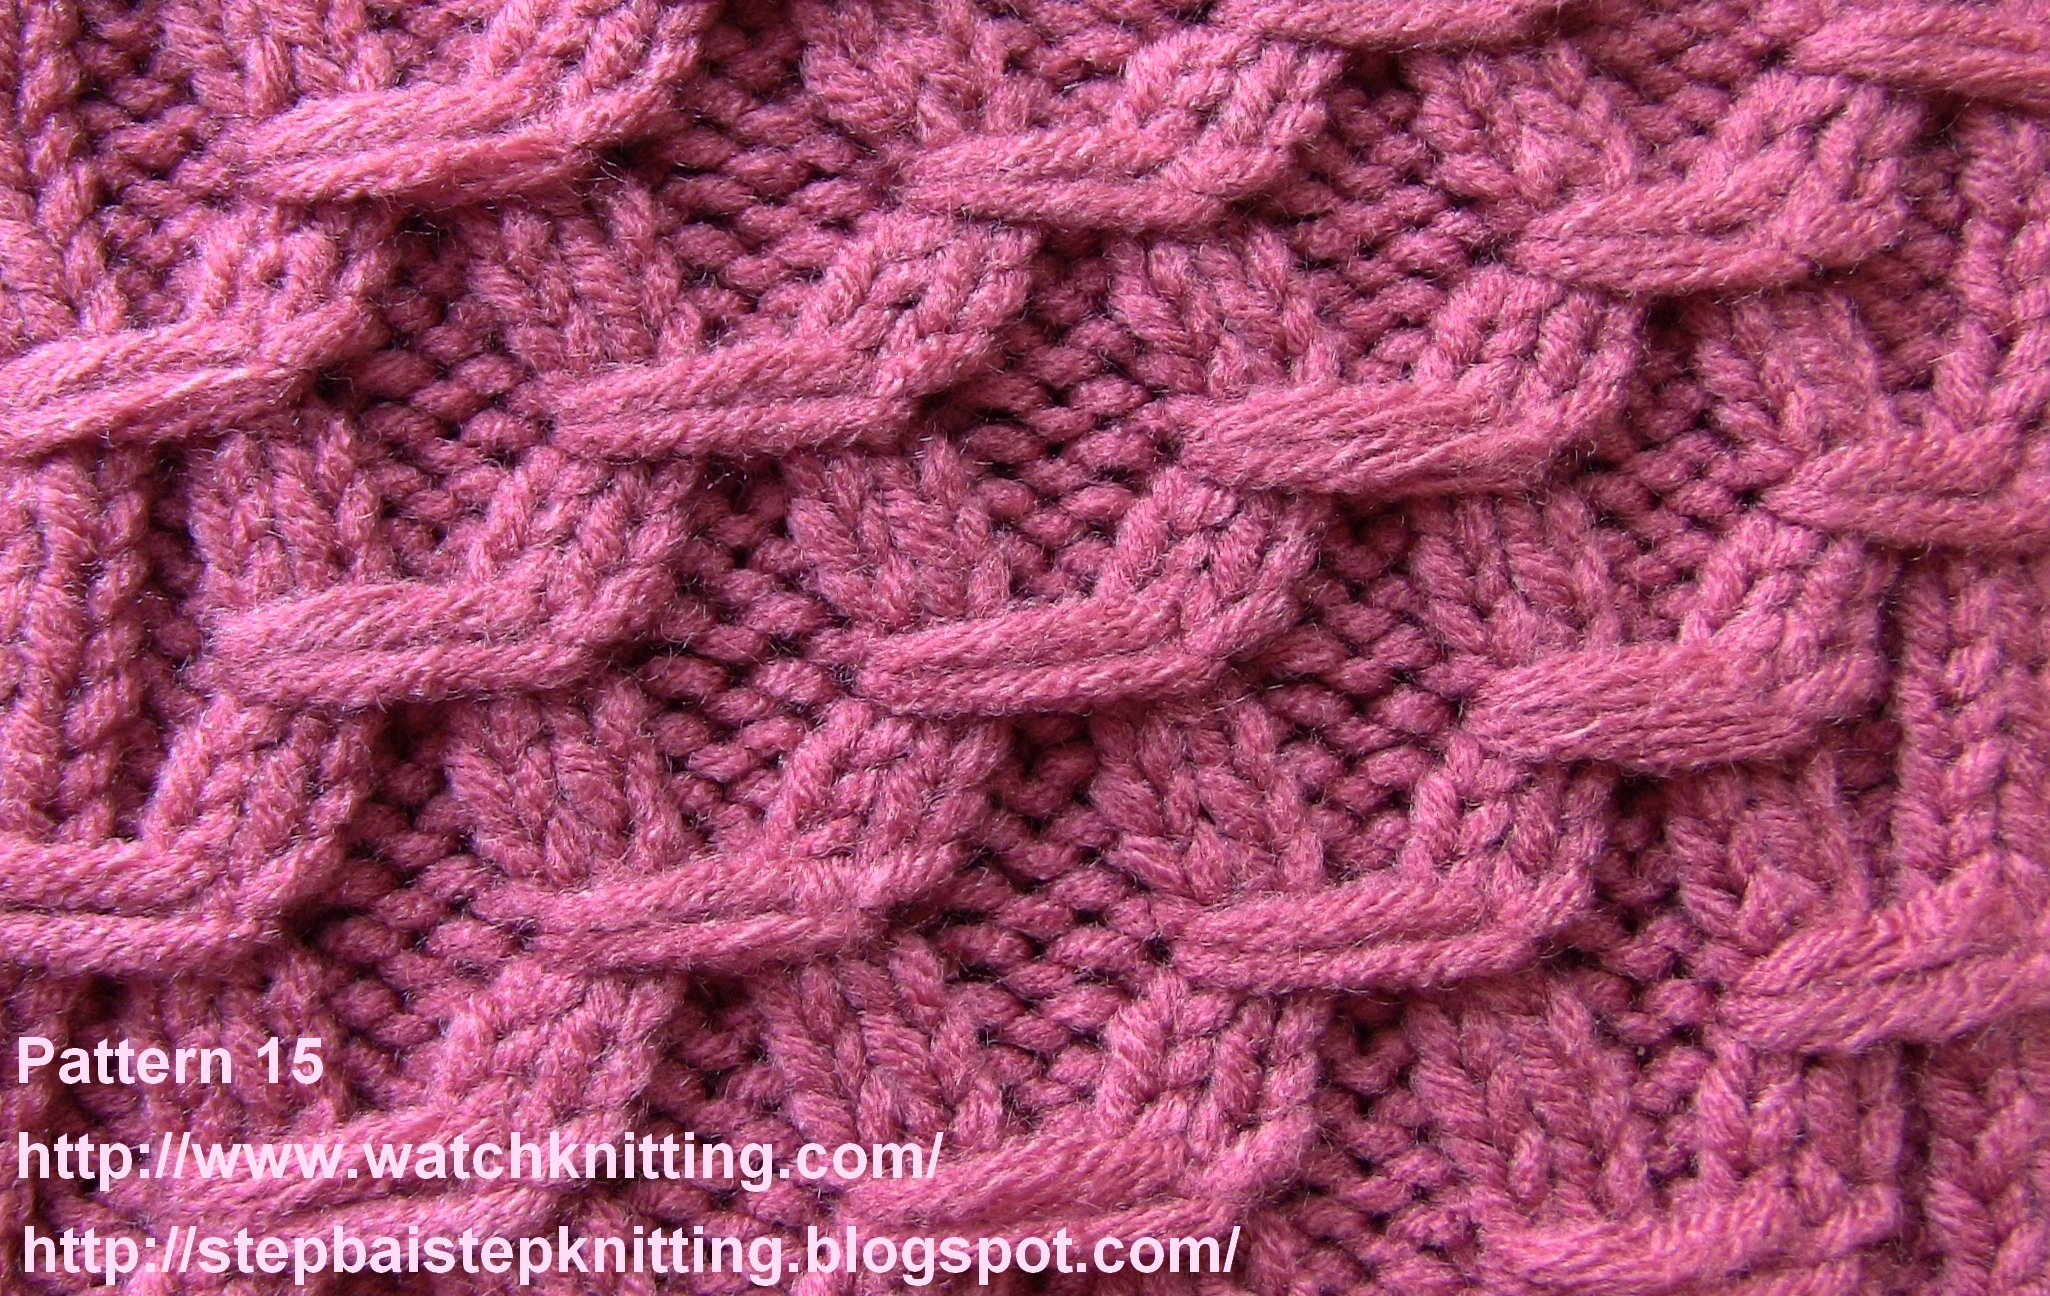 Knitting Stitches Pattern : Embossed Knitting Patterns Watch knitting